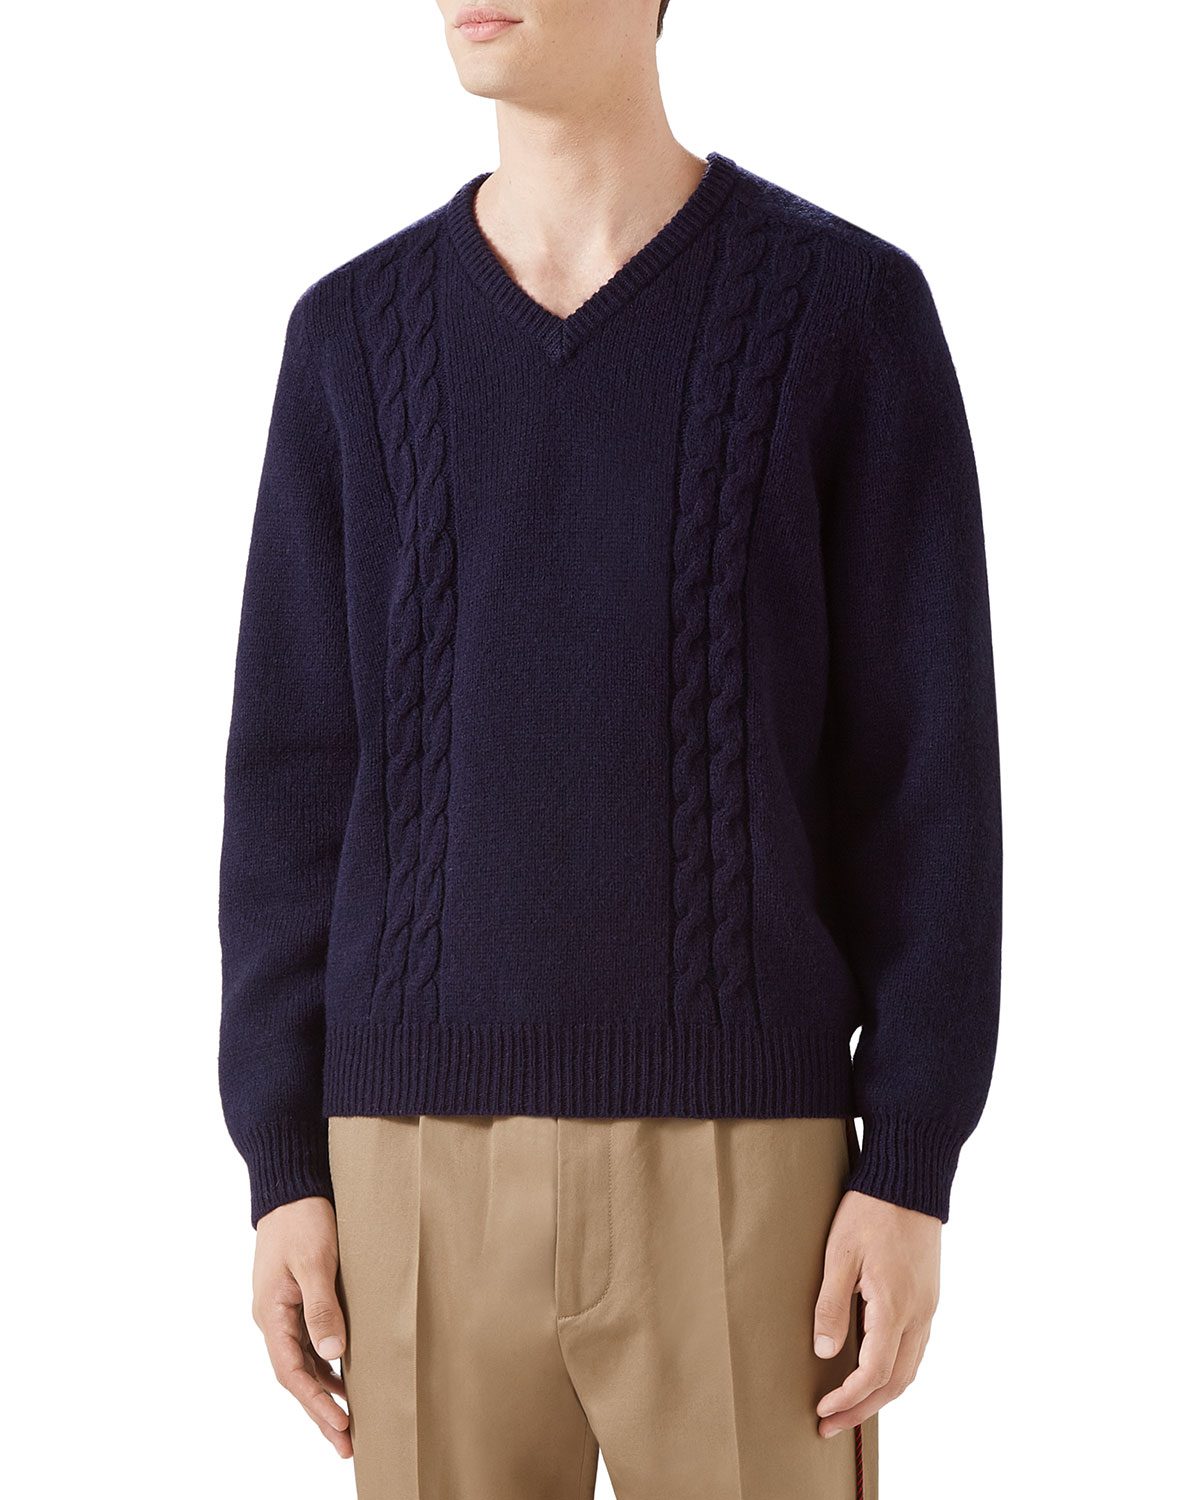 Gucci Mens Cashmere Cable Knit Sweater Neiman Marcus